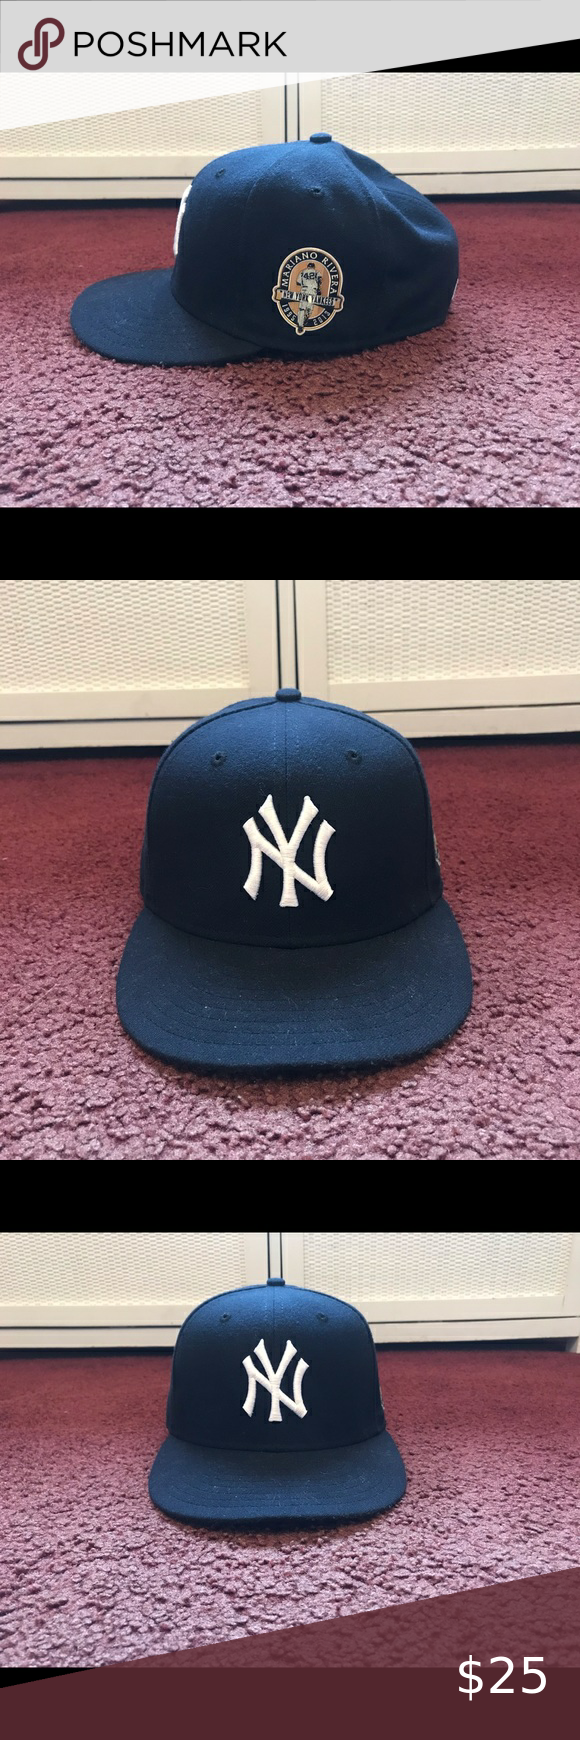 Ny Yankees Mariano Rivera Patch Fitted Hat 7 1 8 Fitted Hats Ny Yankees Yankees